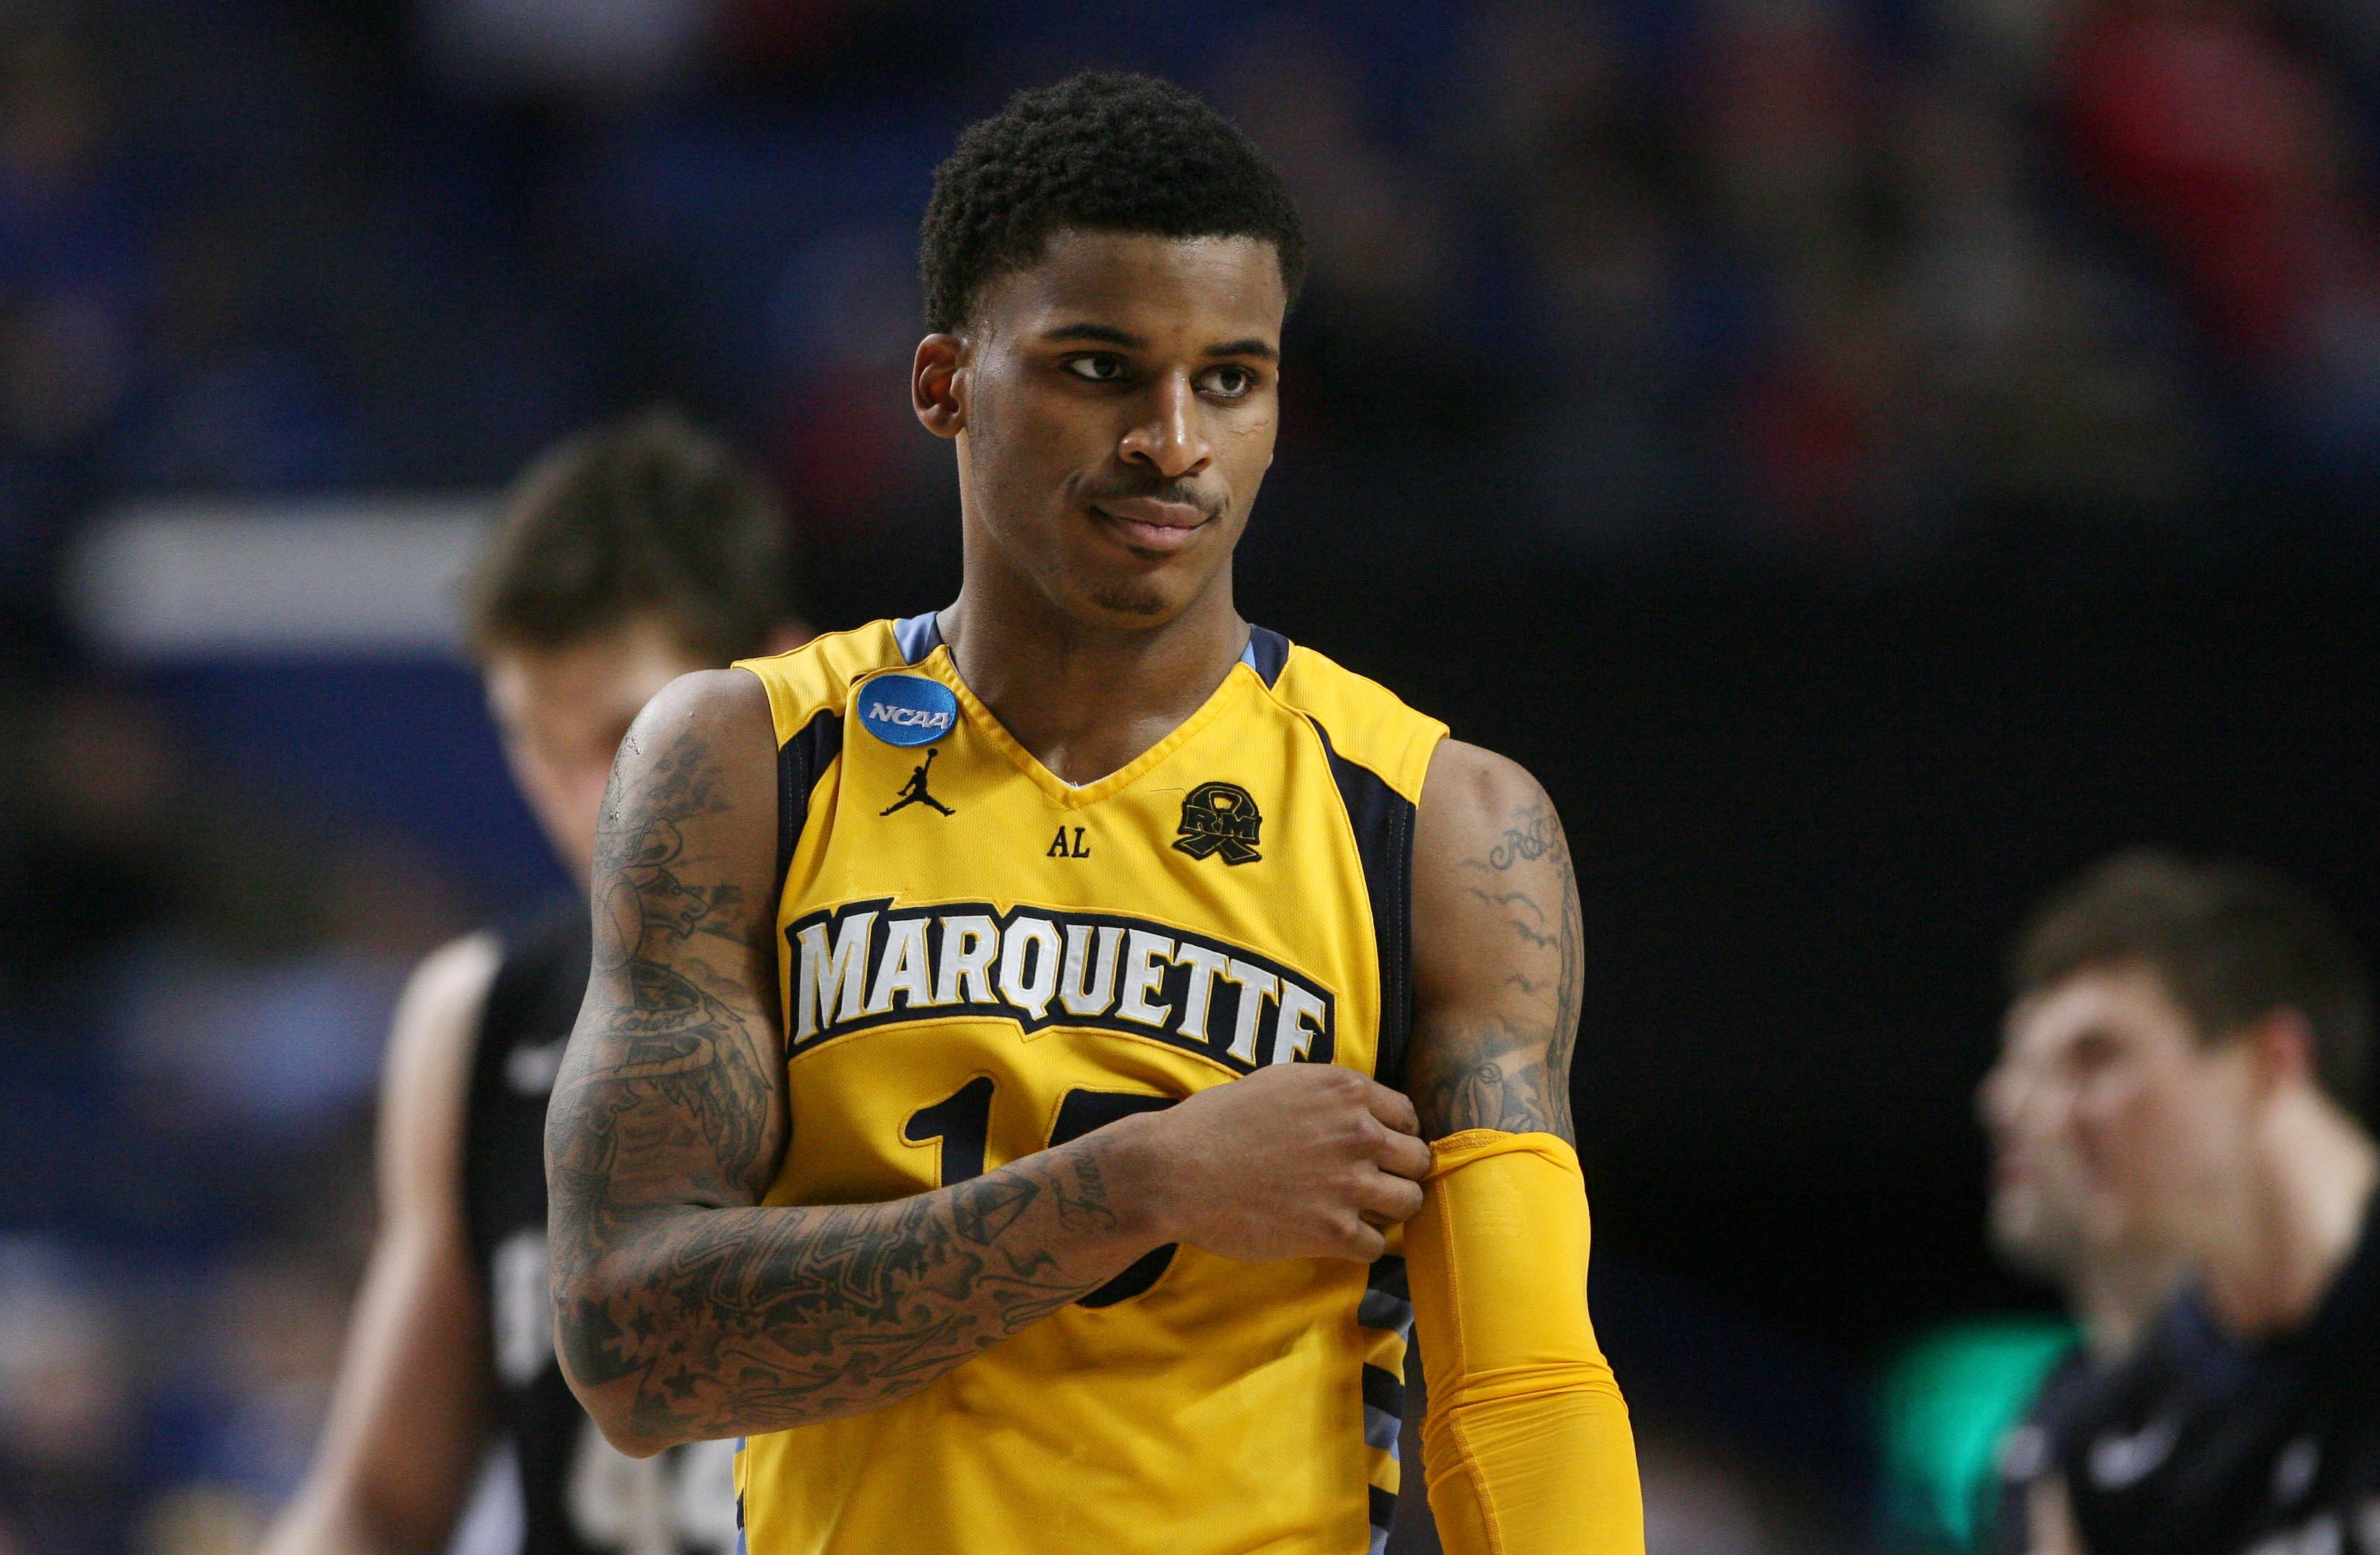 Blue has unfinished business in Sweet 16 | Paint Touches